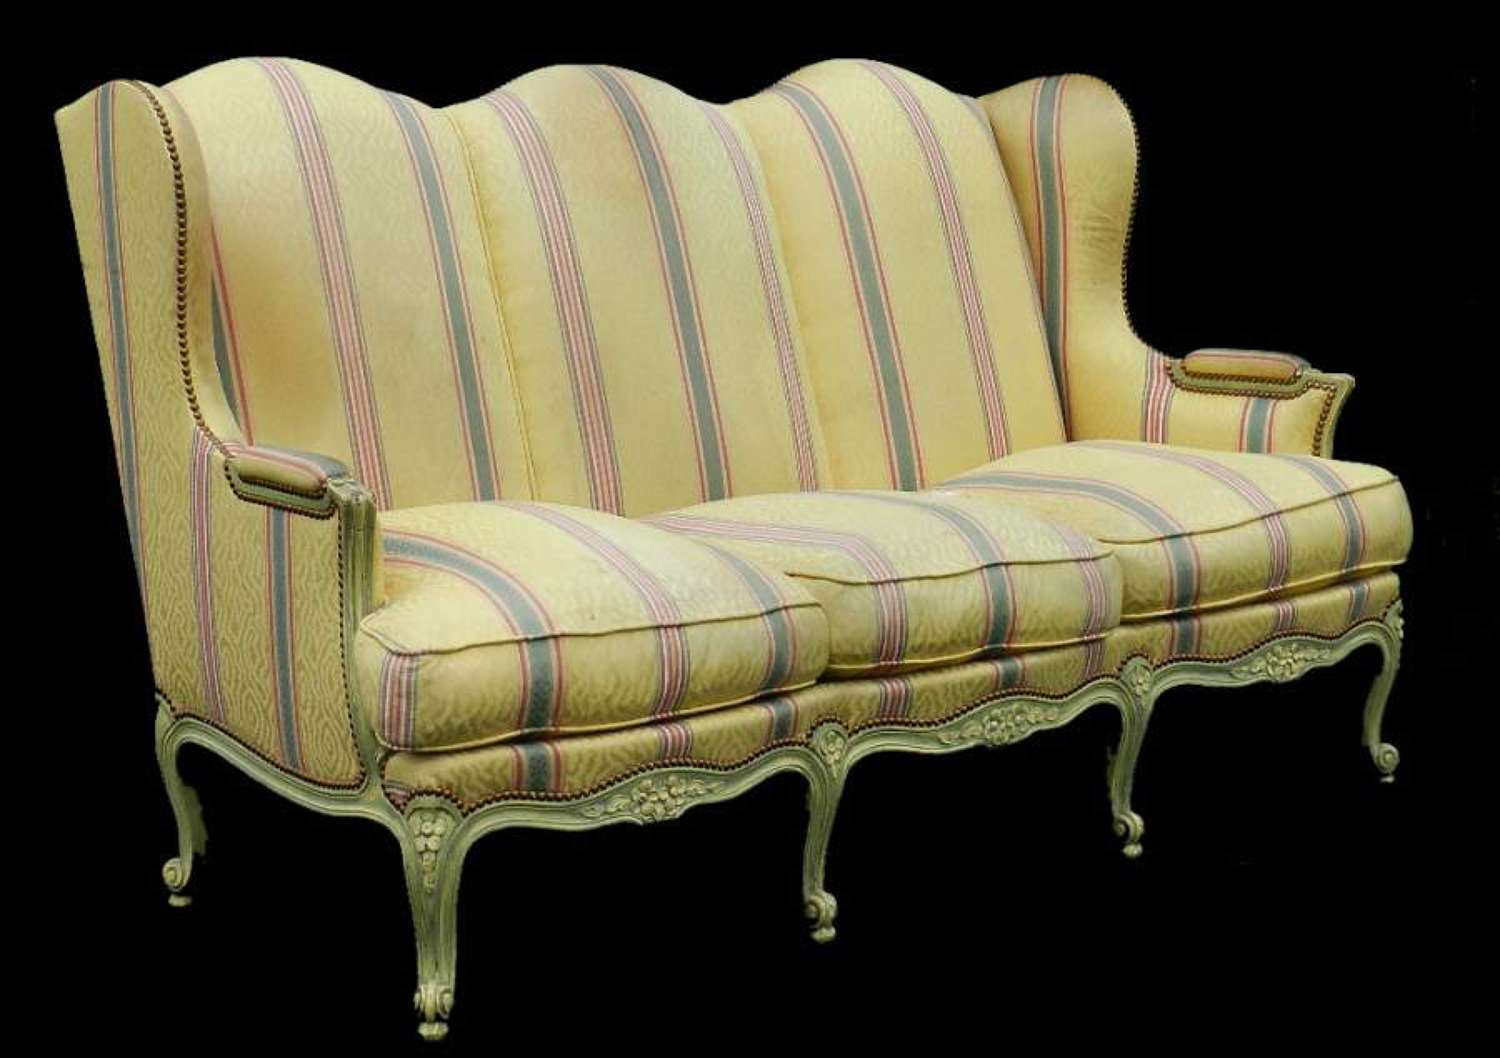 3 Seater Louis XV revival French Wing Sofa Settee clean or recover